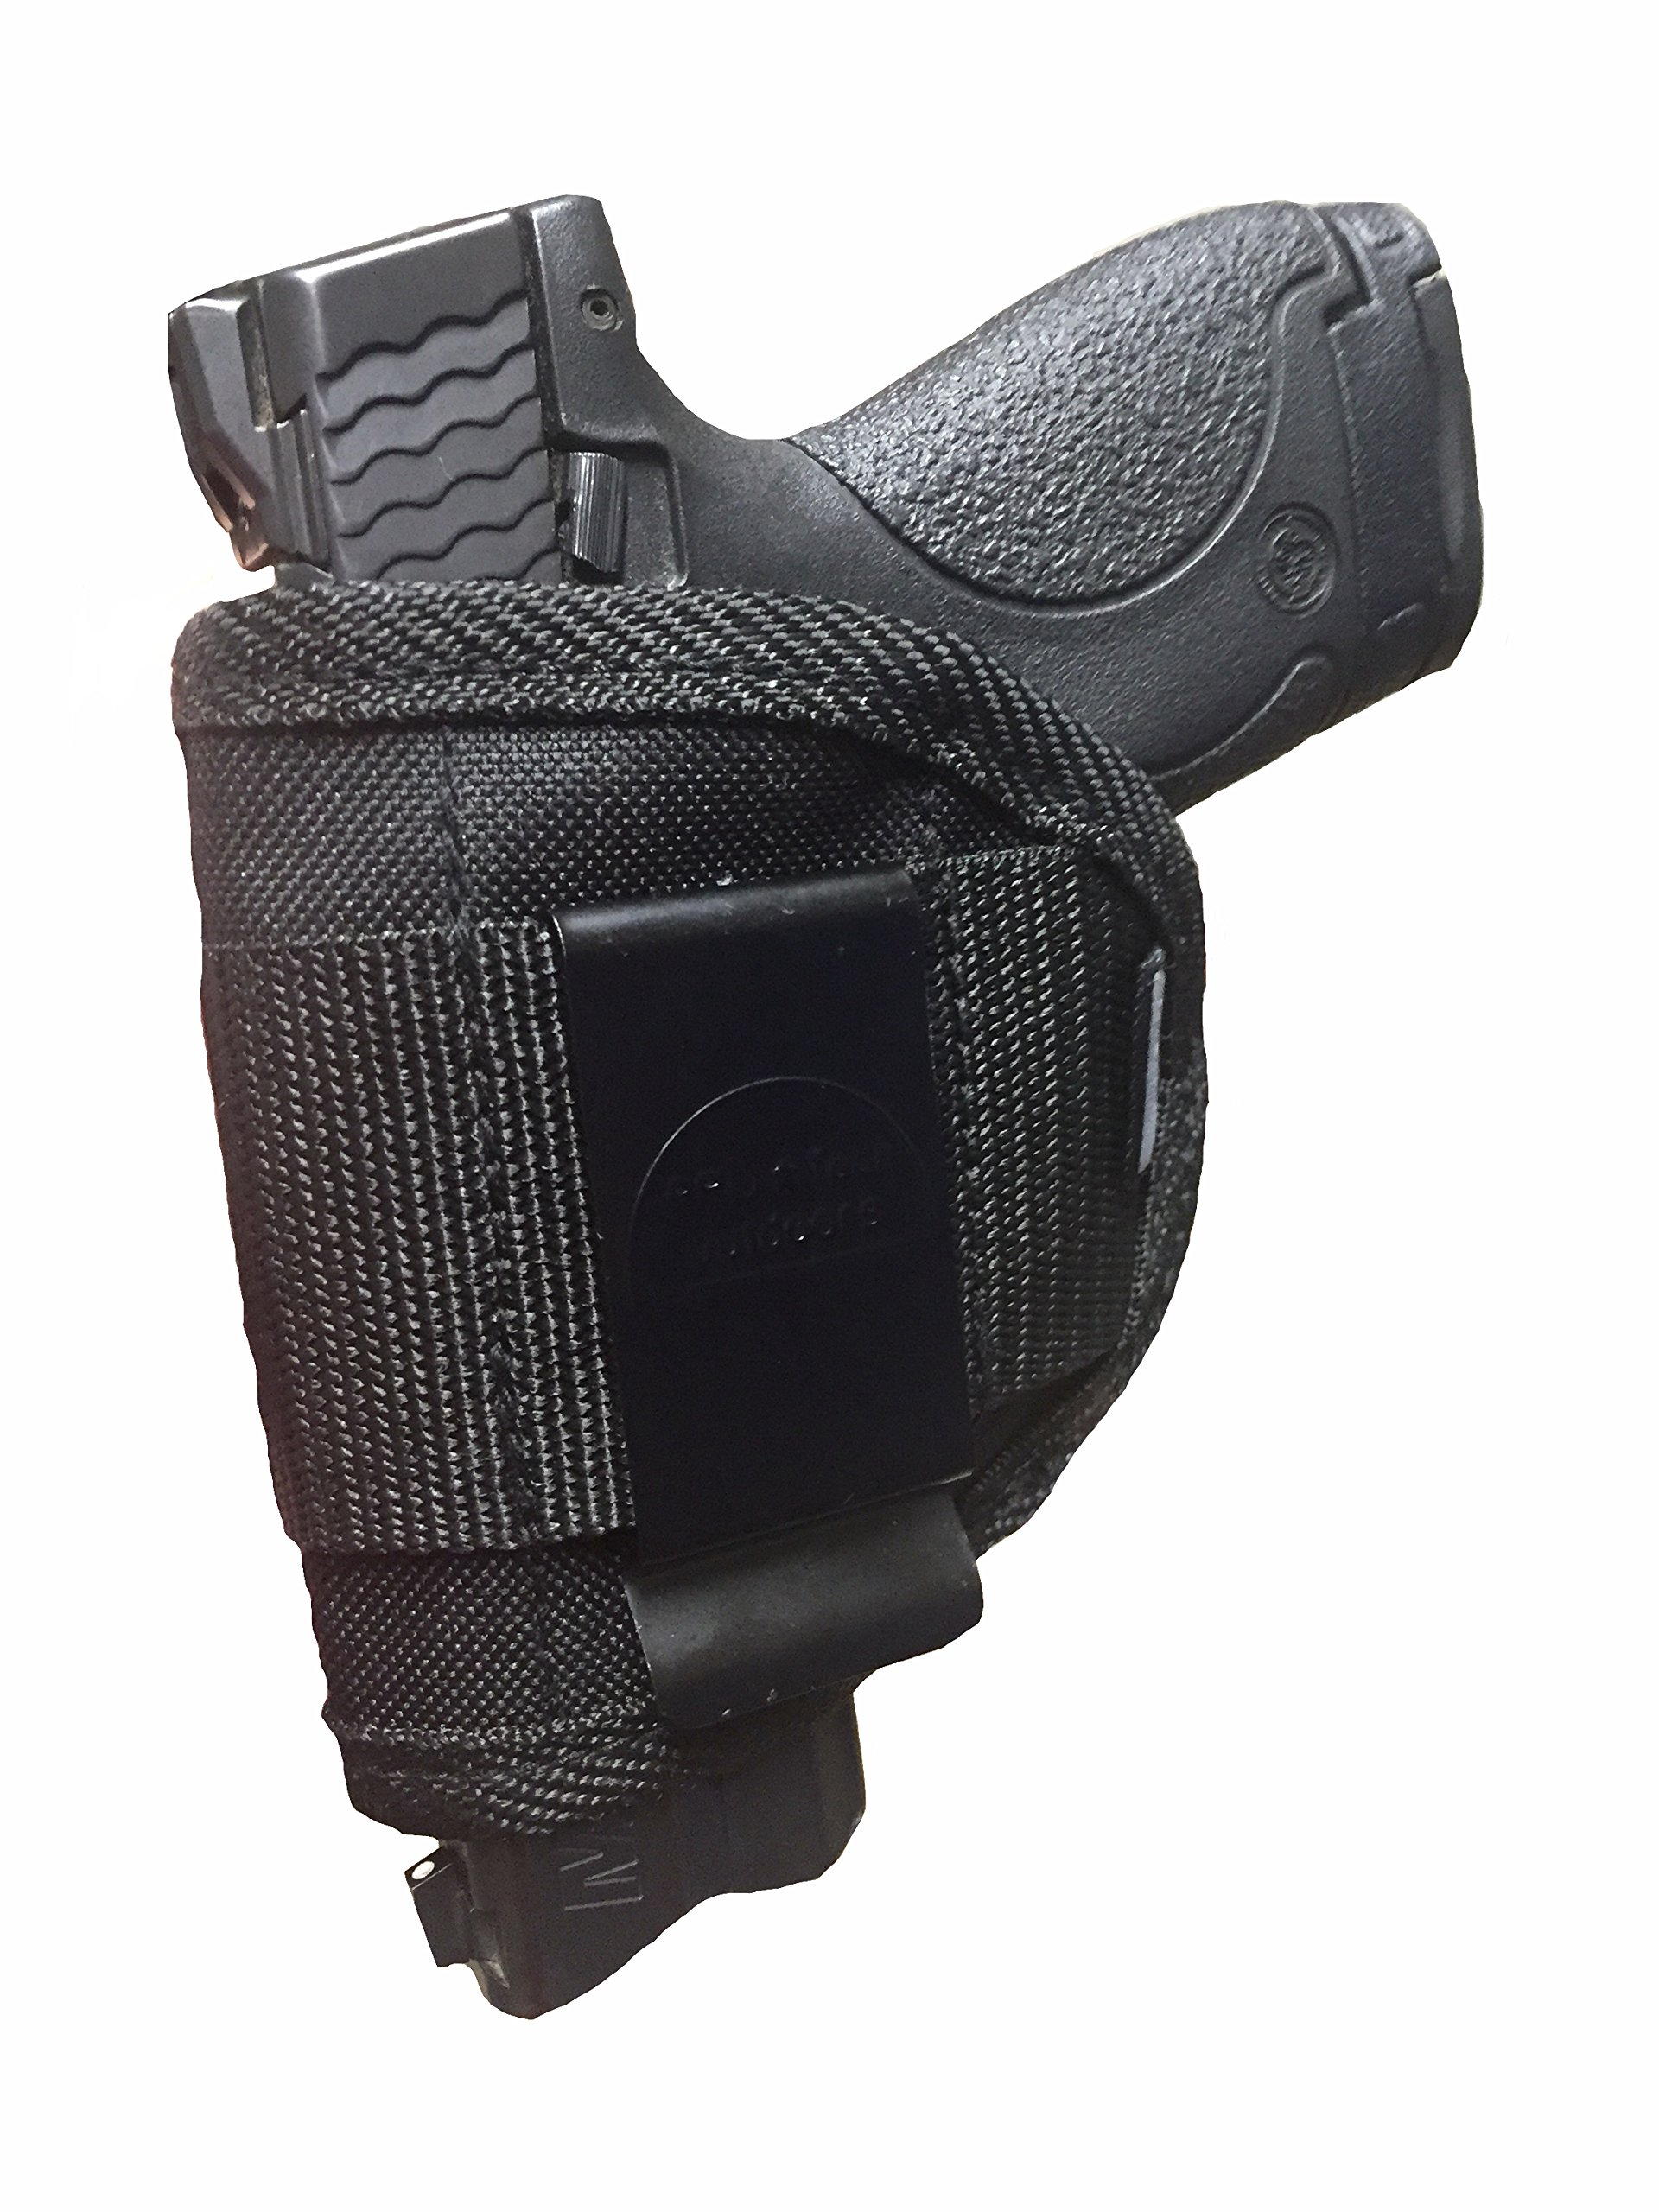 Pro-Tech Outdoors Concealed In the Pants/waistband Holster Fits Glock 17,19,20,21,22,23,25,26,27,28,29,30,31,32,33,36,38,39,40,41,42 by Pro-Tech Outdoors (Image #3)